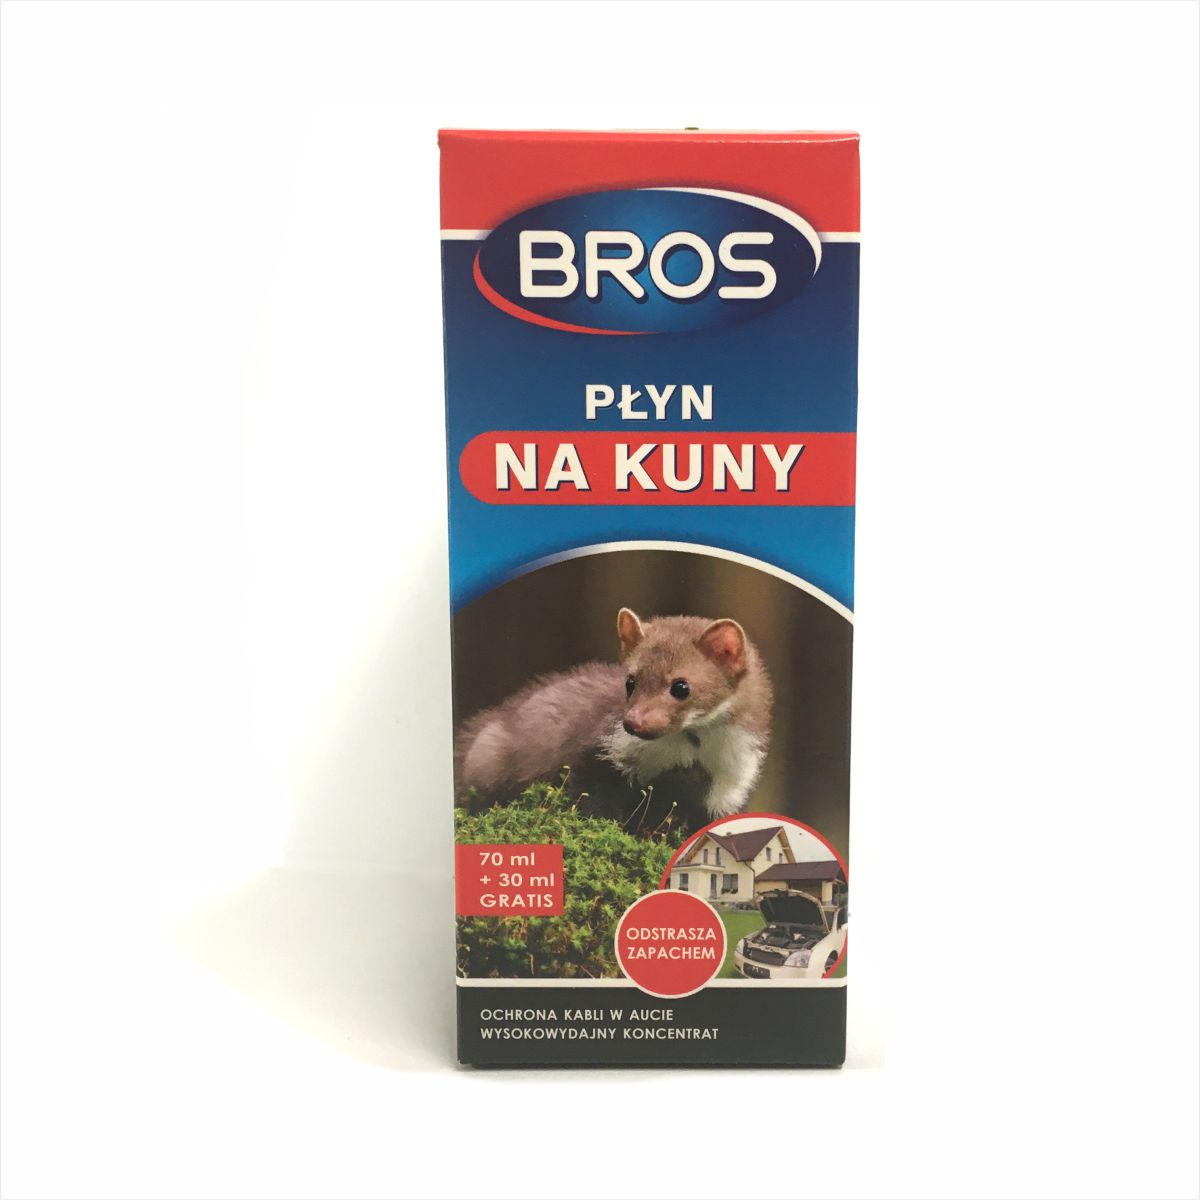 Płyn na kuny 100 ml Bros